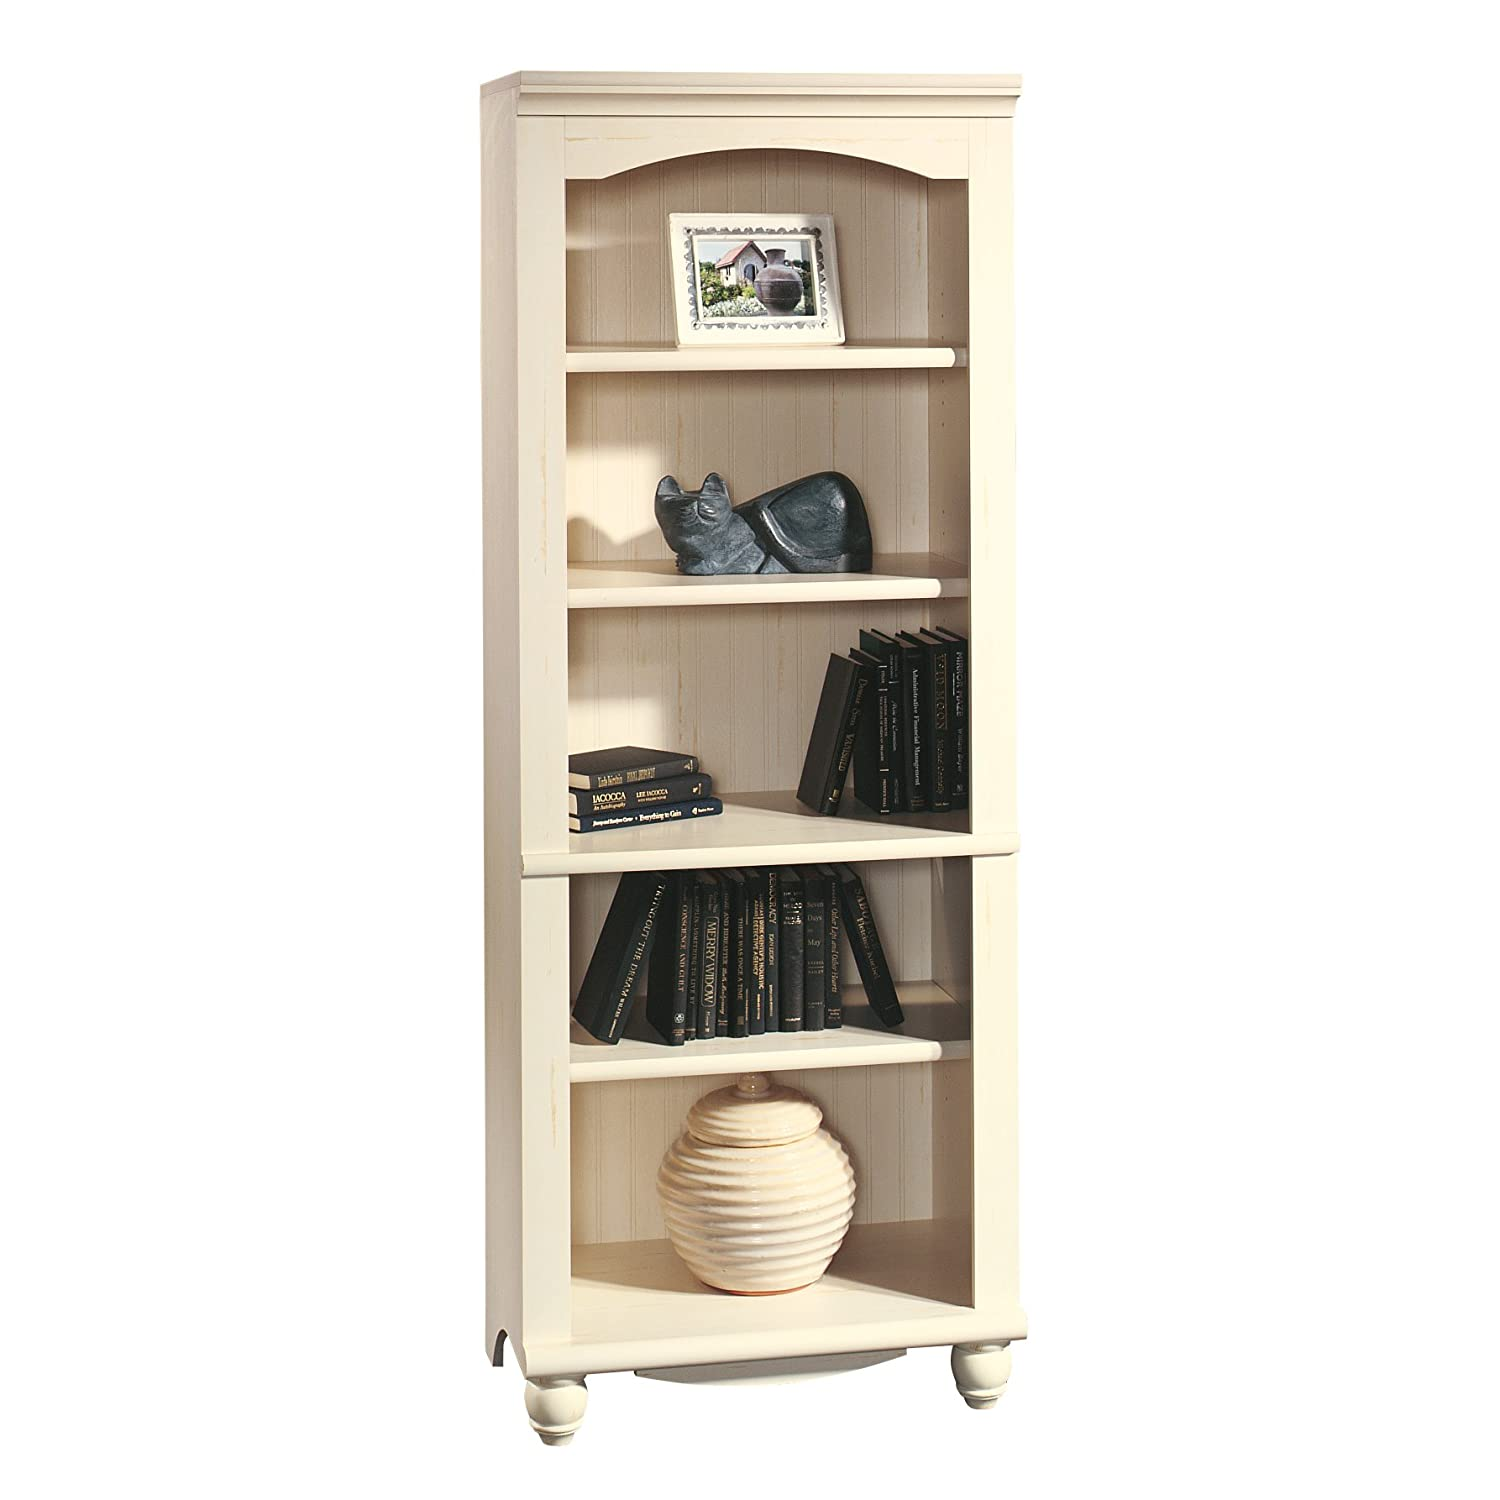 Amazon.com: Sauder Harbor View Library, Antiqued White: Kitchen ...